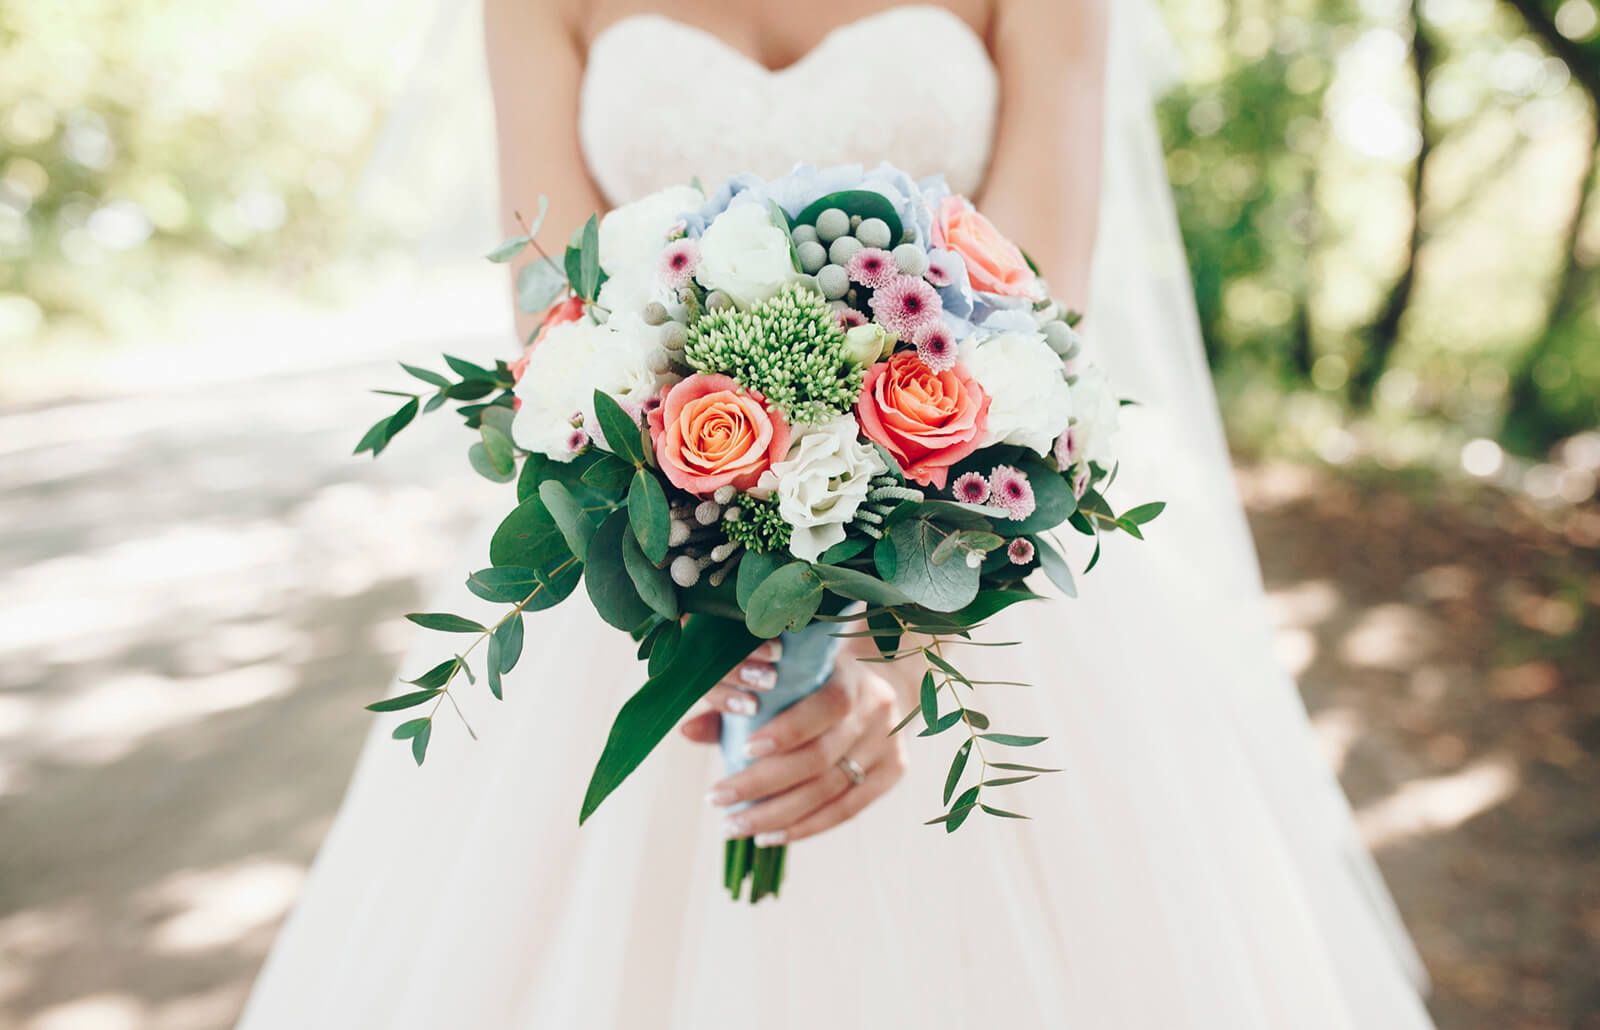 choose greenhouse wedding bouquets for your wedding 9 - Choose Greenhouse Wedding Bouquets for Your Wedding